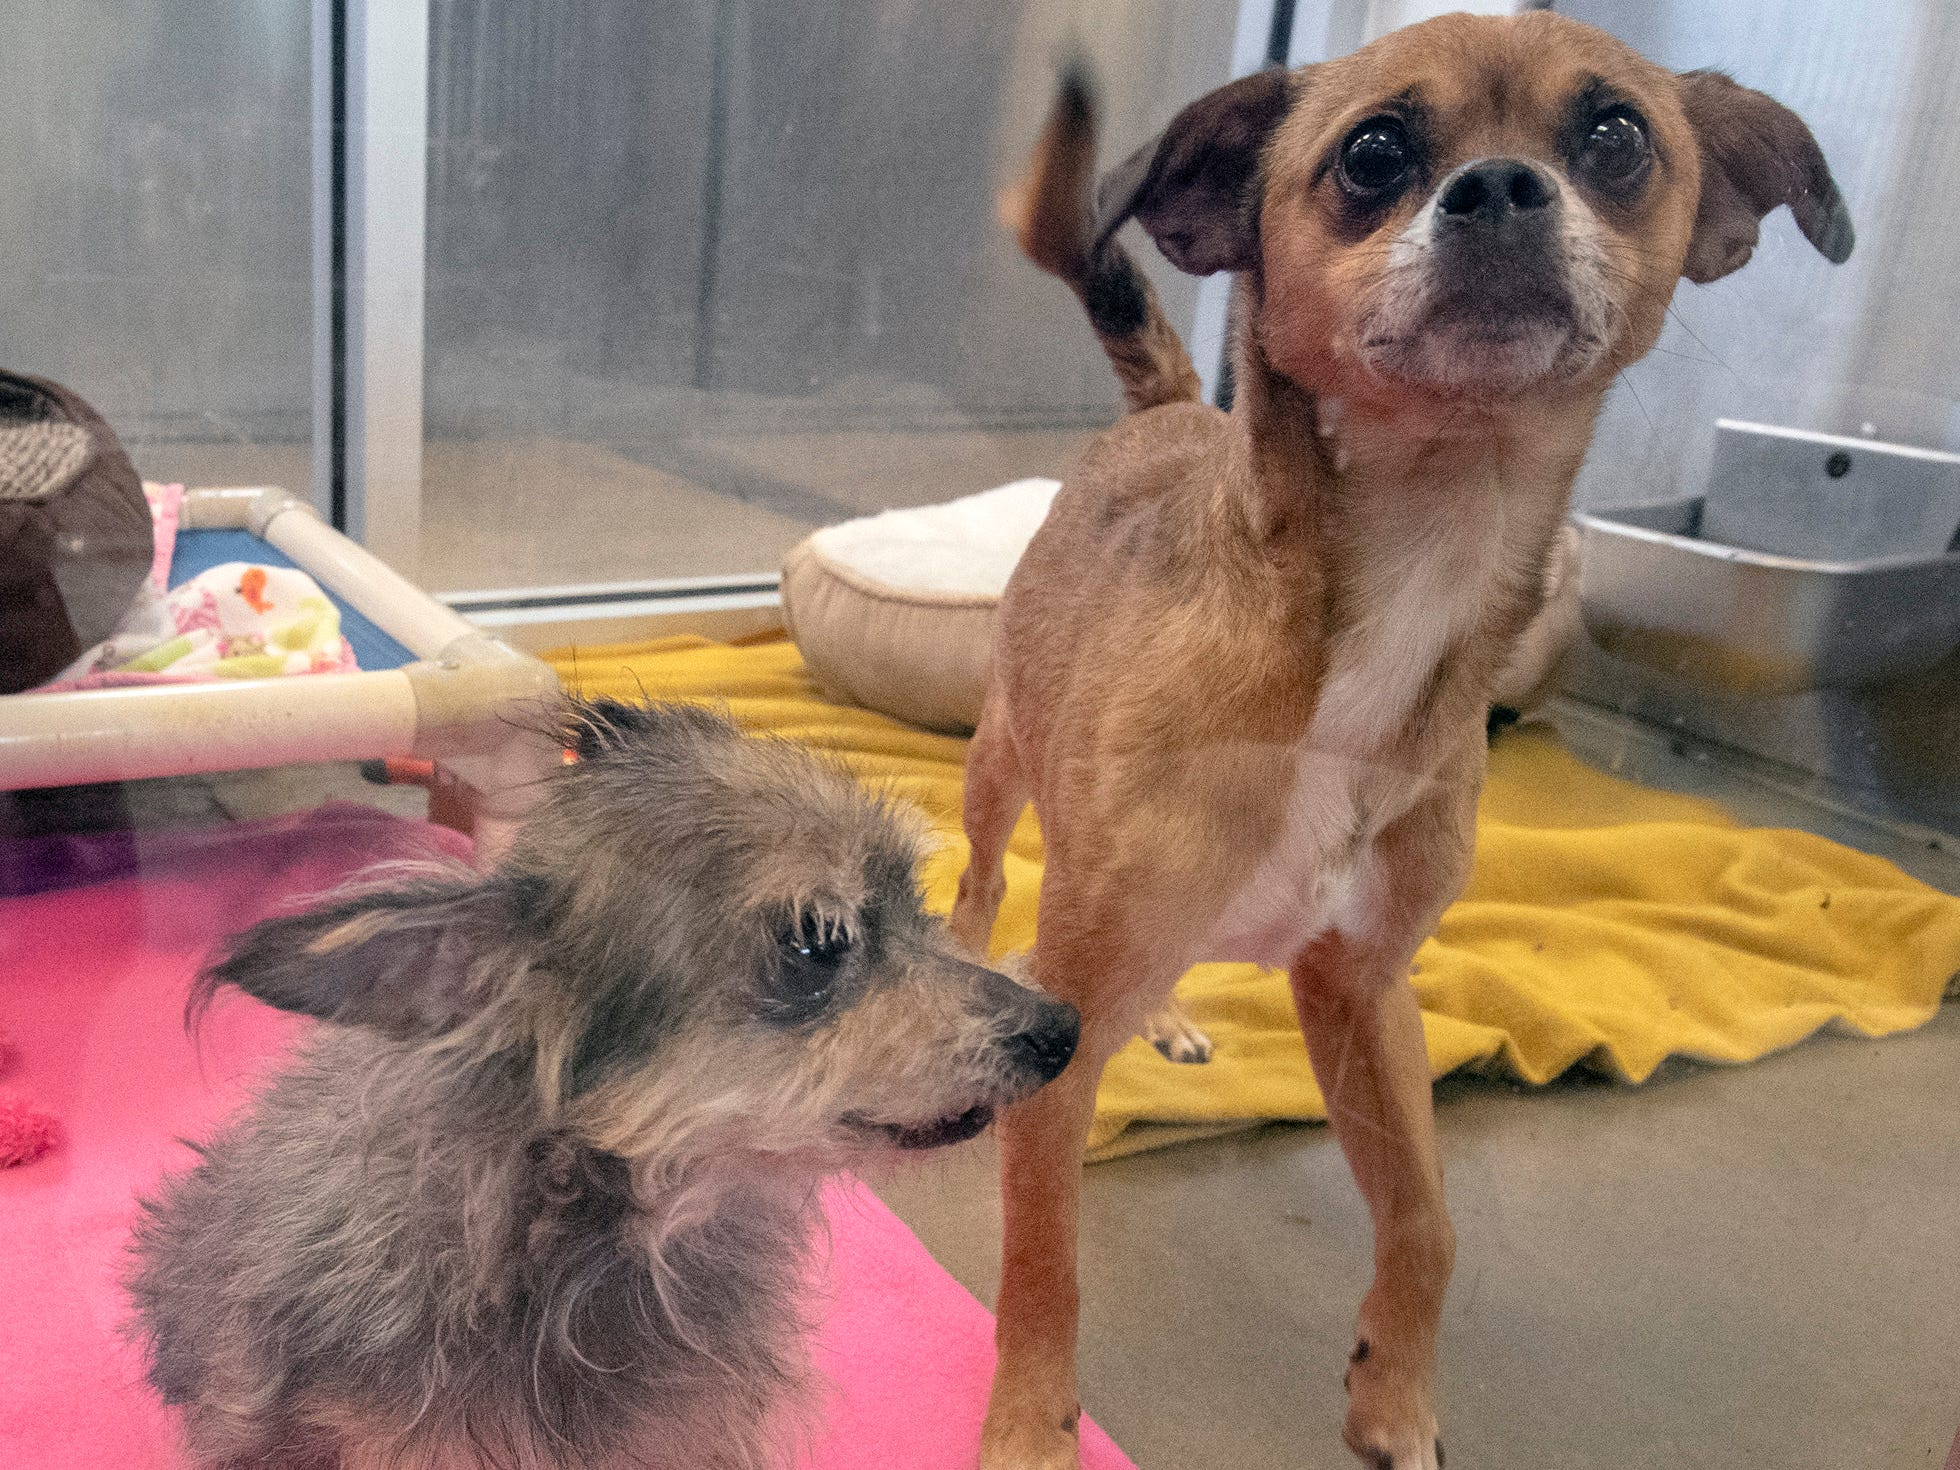 Chico, left, is a 12-year-old Yorkshire Terrier and Chance is a mixed, 5-year-old Chihuahua who are a bonded pair available for adoption at the York County SPCA Tuesday February 26, 2019. The pair were brought into the shelter because their owner moved and couldn't take them. They have lived with a 6-year-old child and did ok, but was a little nervous. The have lived with another dog and a cat who they liked.